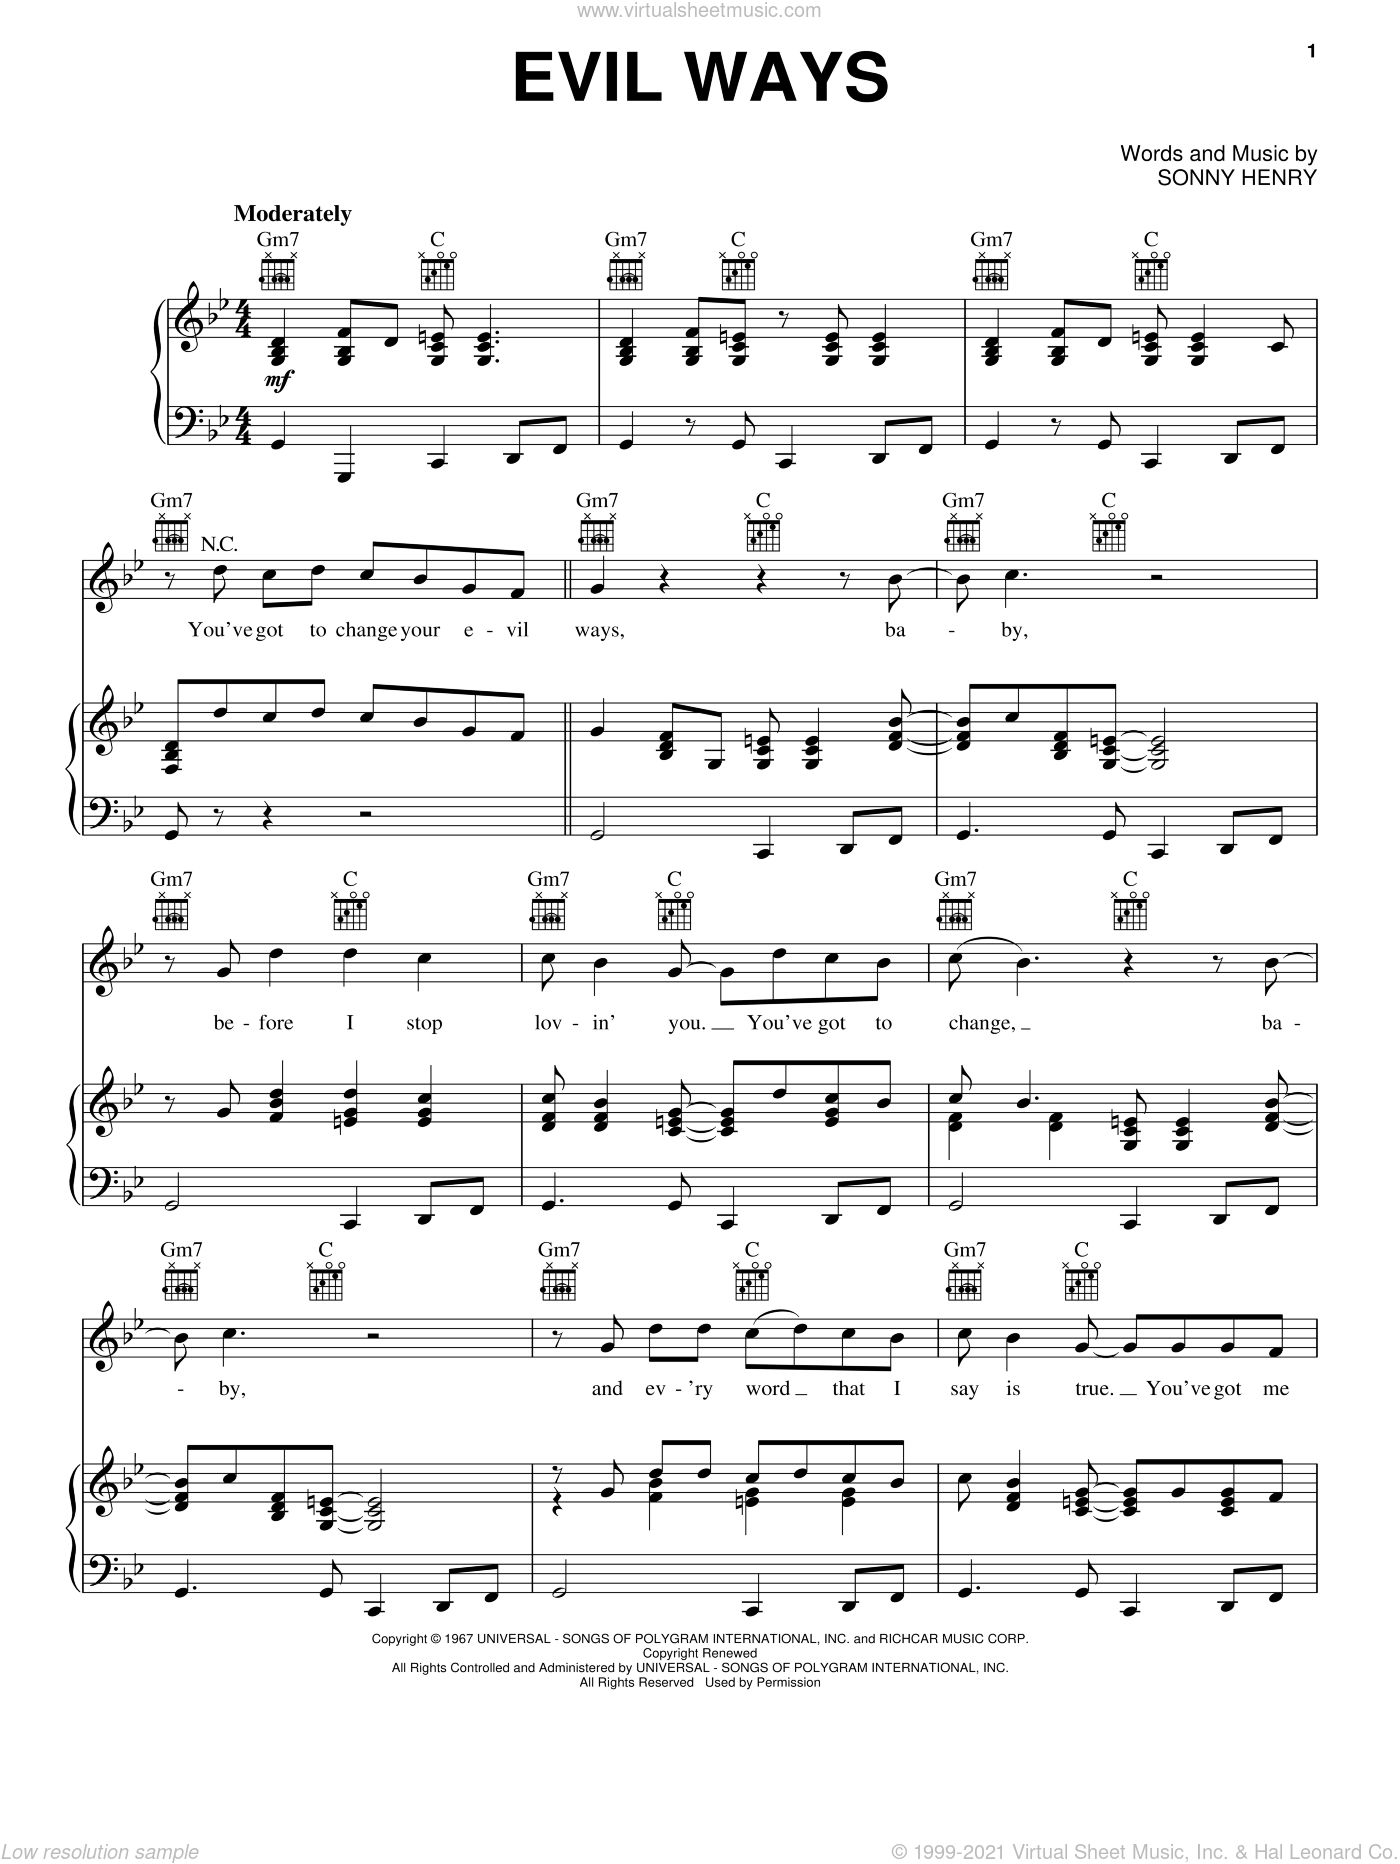 Evil Ways sheet music for voice, piano or guitar by Sonny Henry